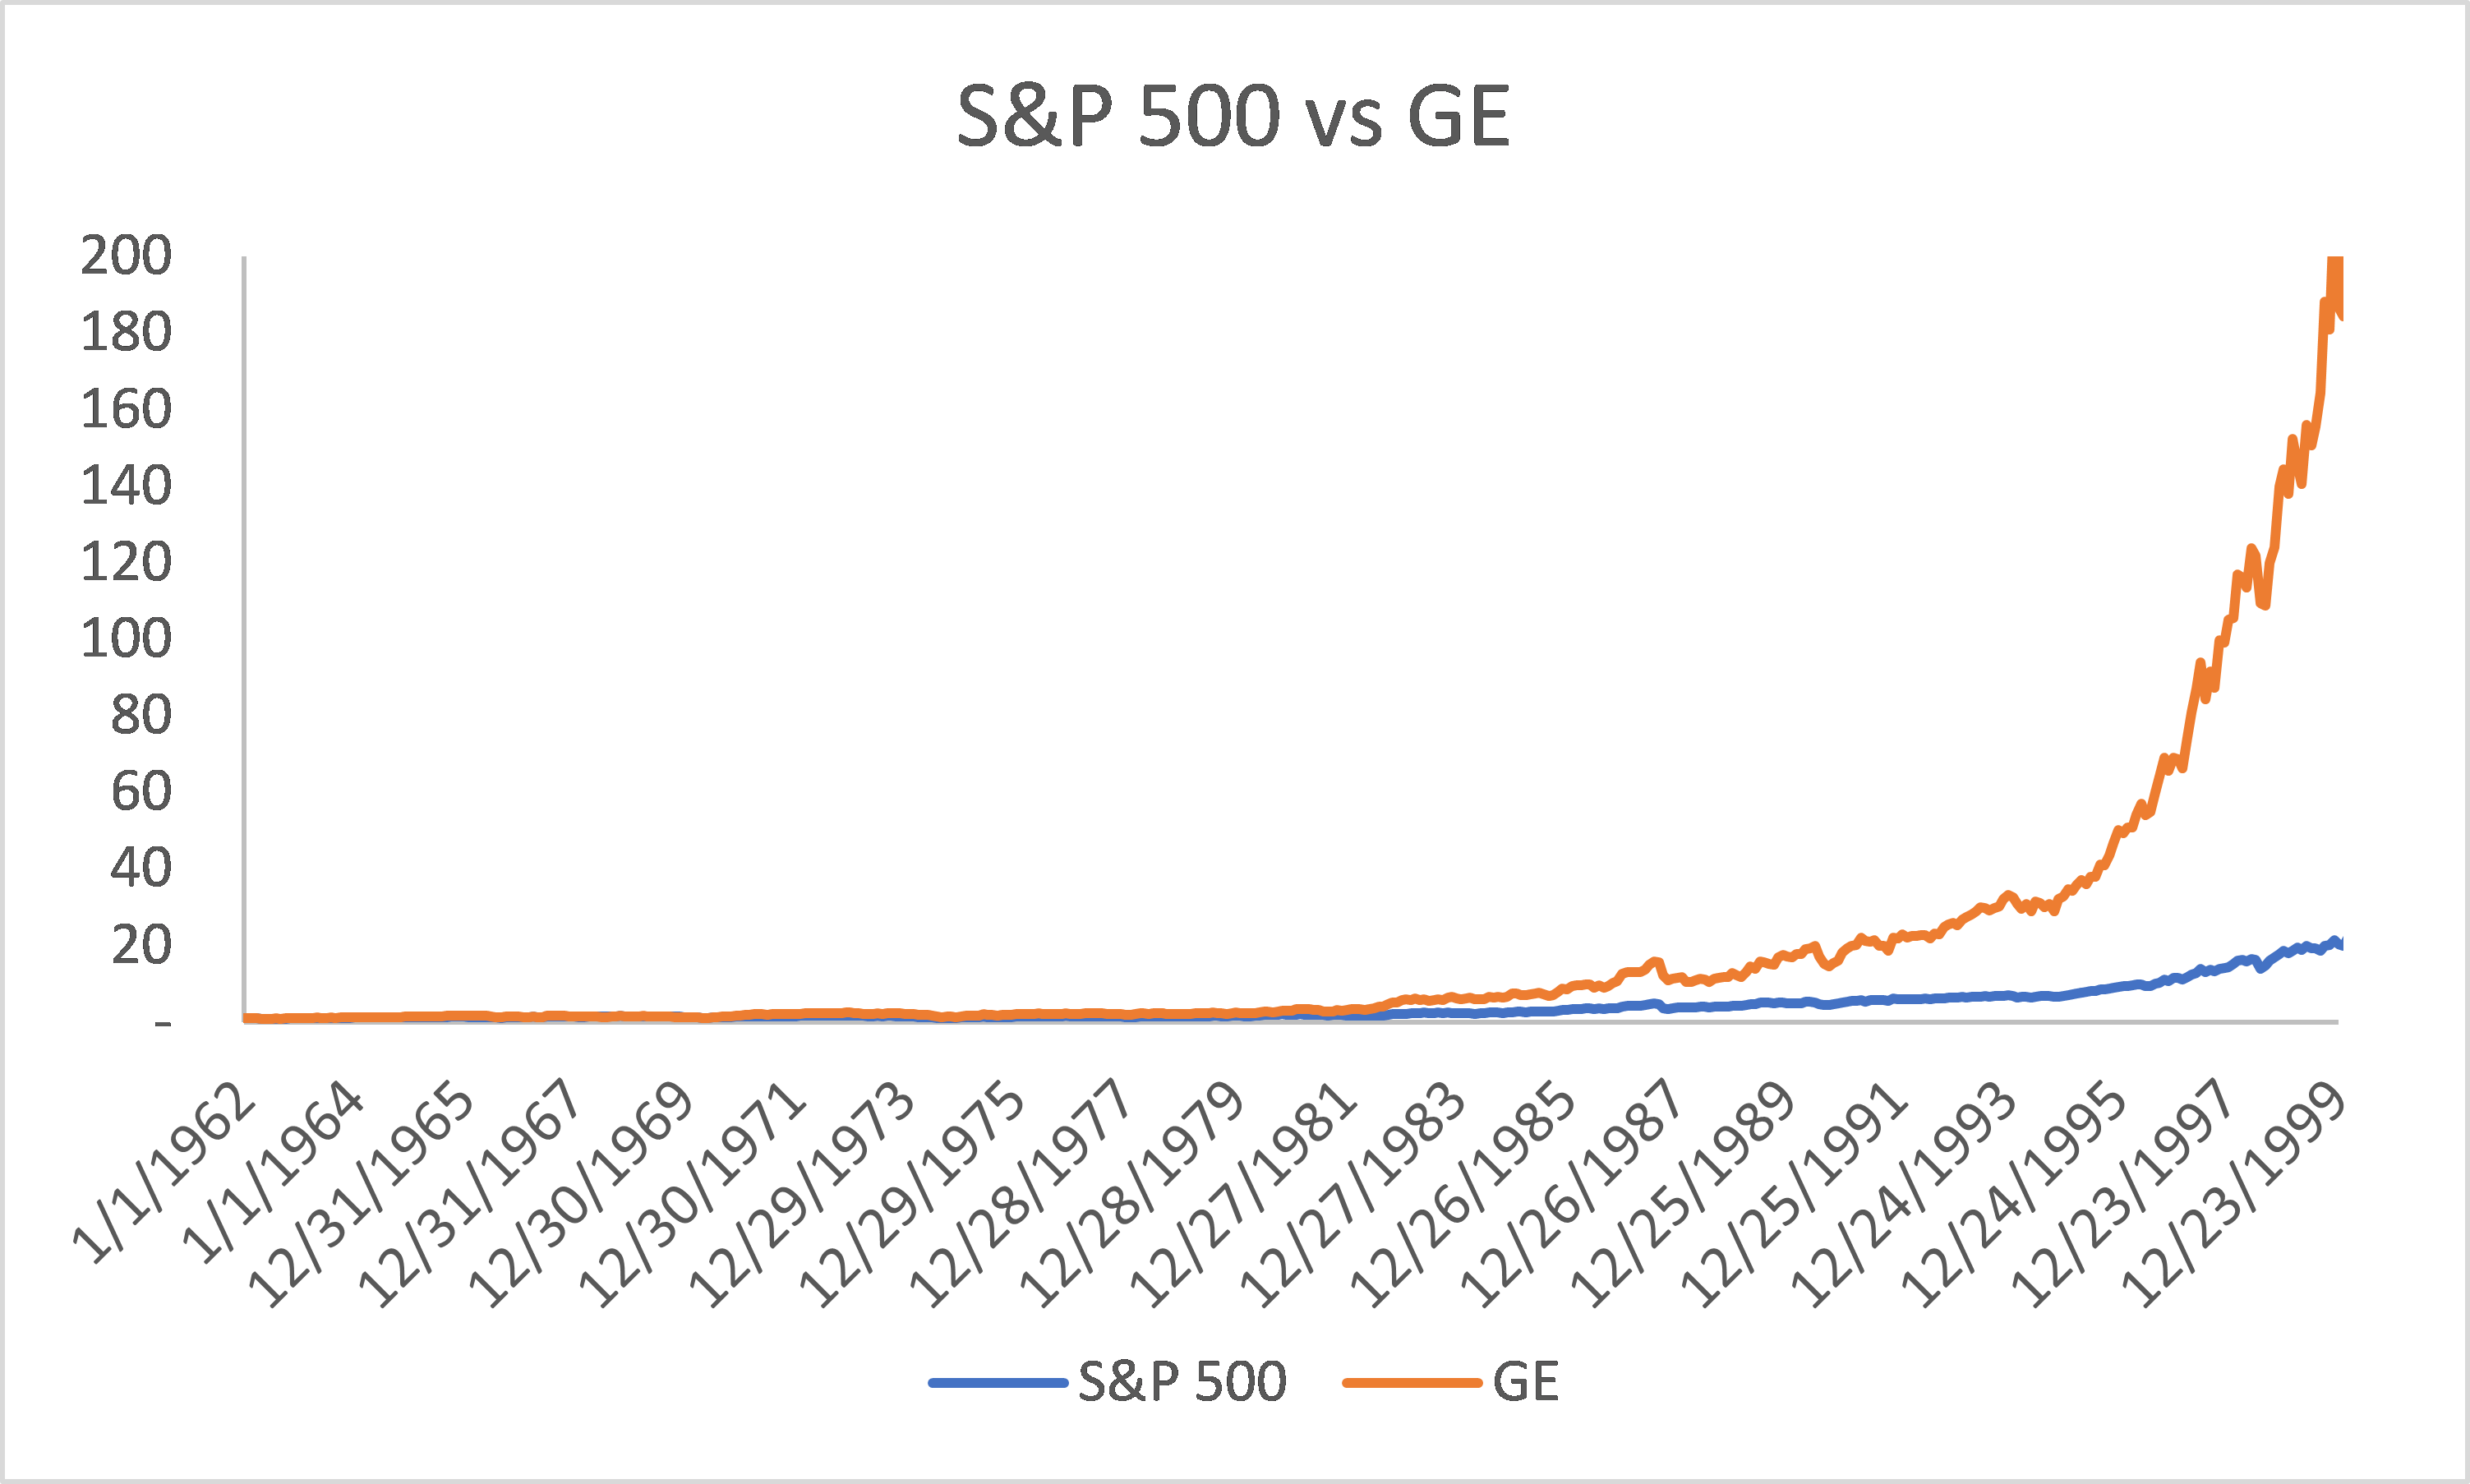 Comparison of GE and S&P 500 appreciation from 1962 to 1999